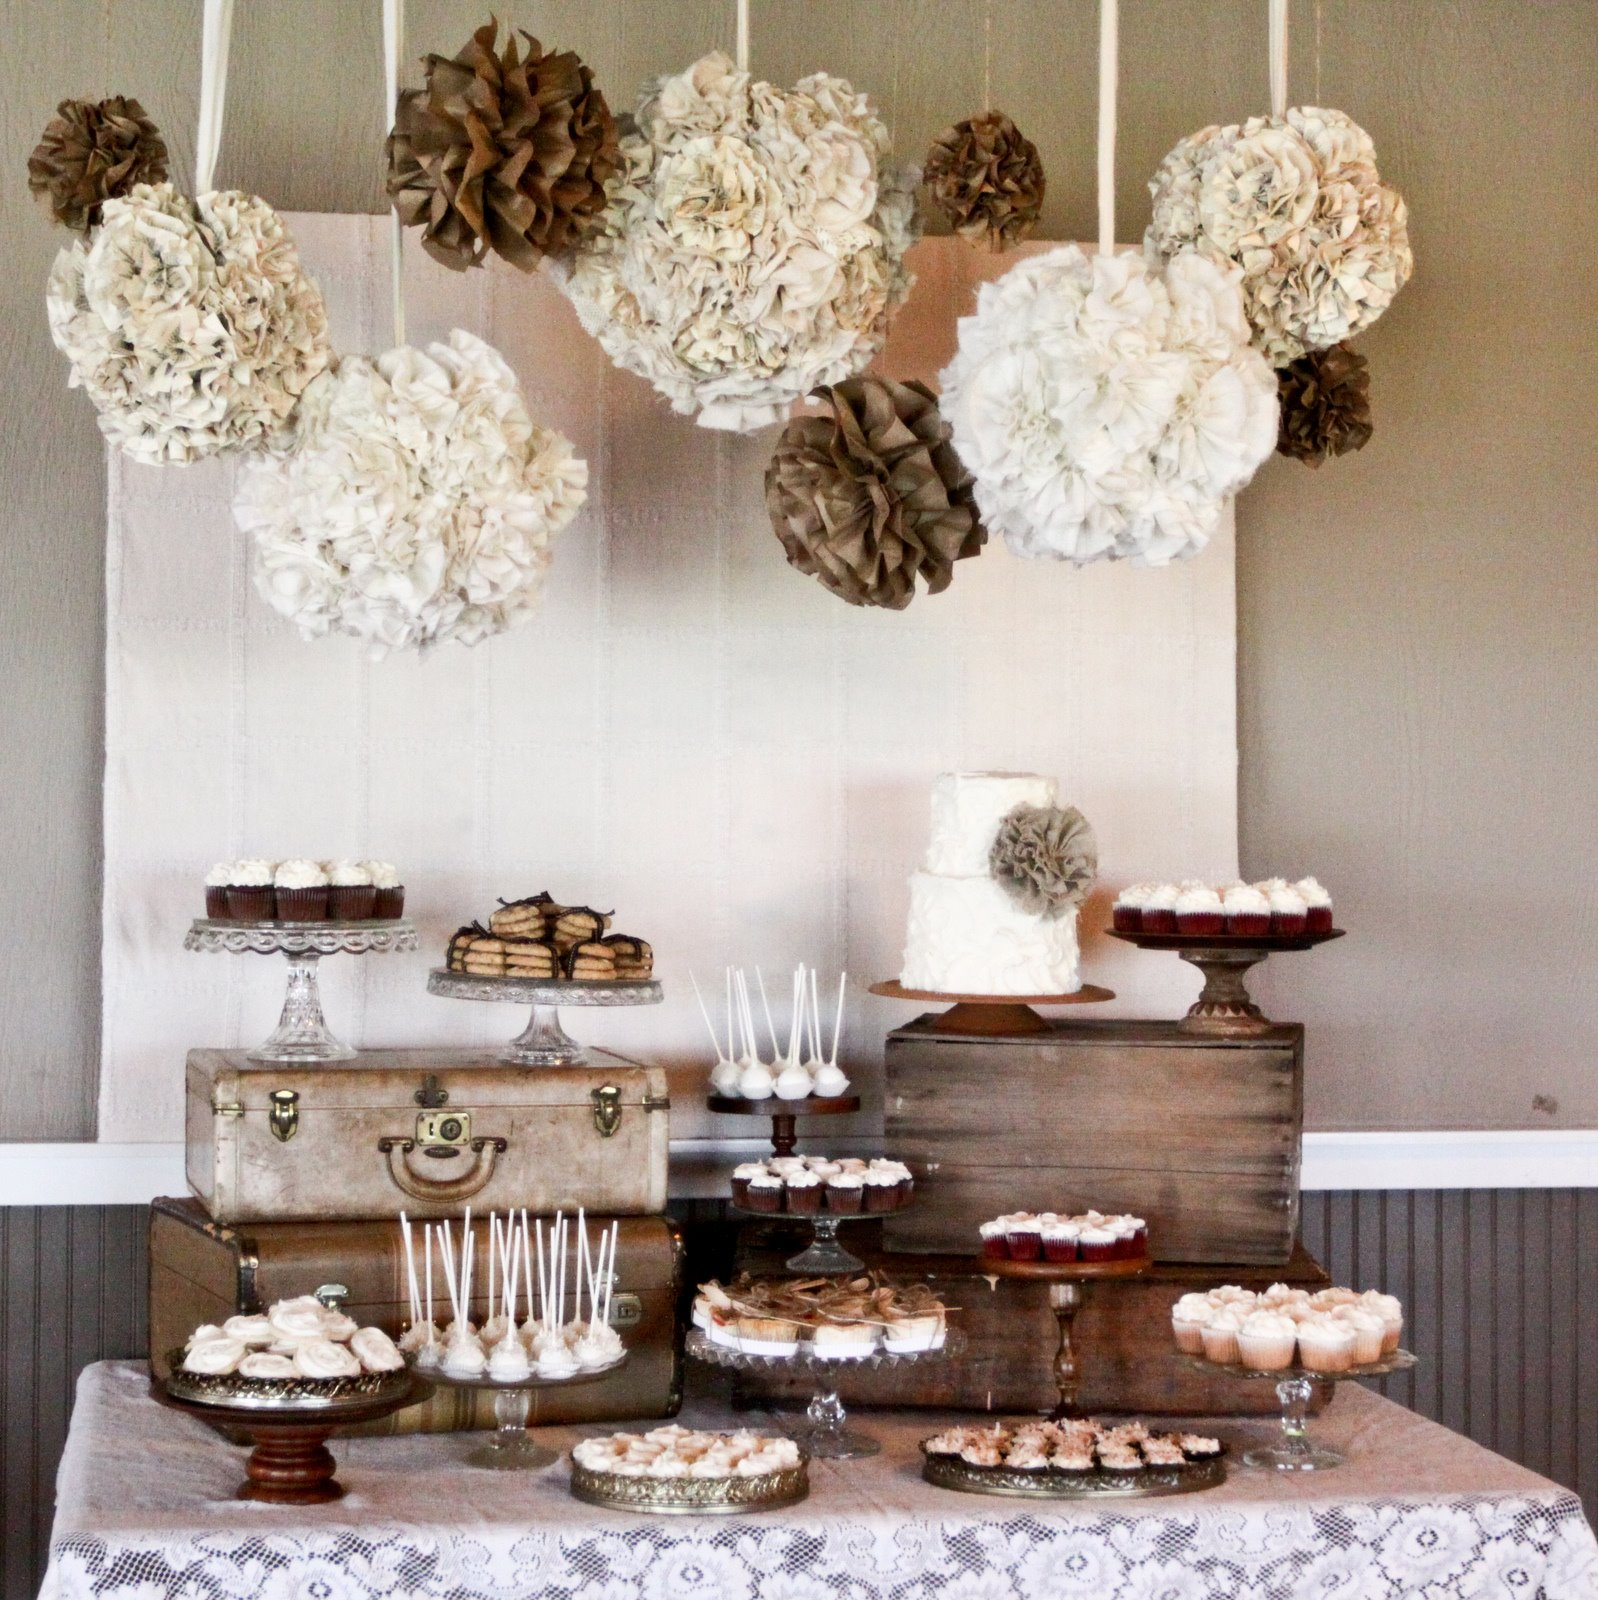 Best Organizitpartystyling Wedding Dessert Table Collection This Month